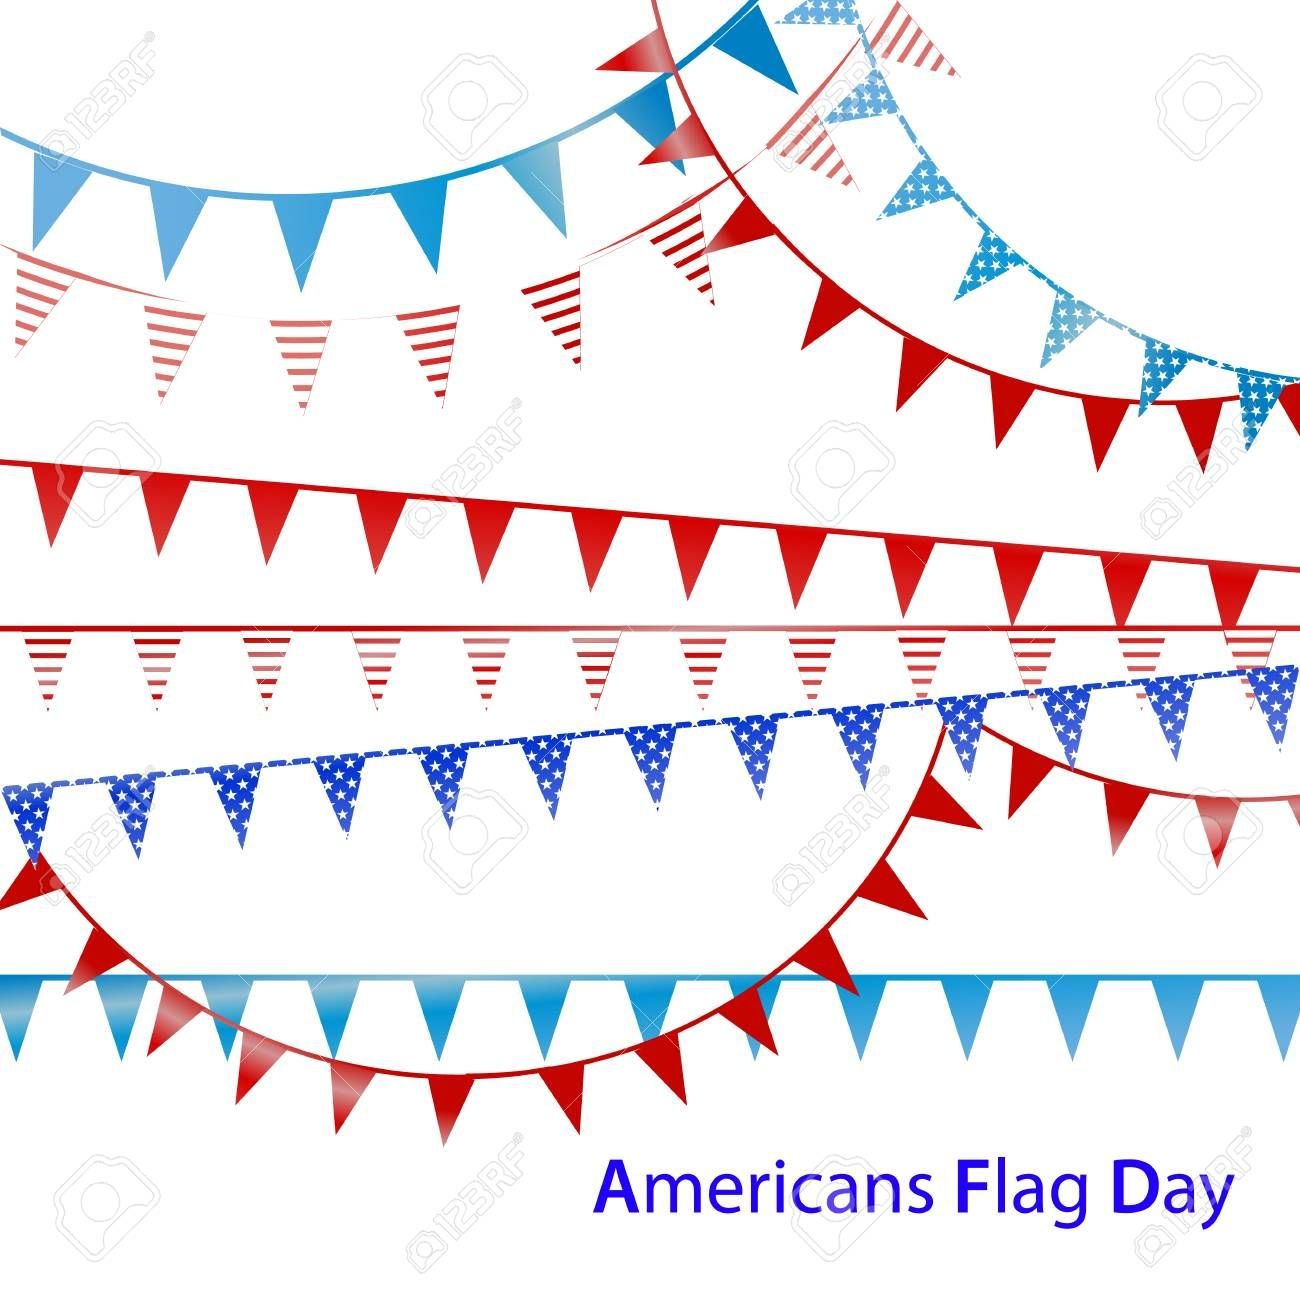 Holiday Flags On A White Background Illustration Vector For Your Design Illustration Affiliate White Fl Holiday Flag American Flag Illustration Design